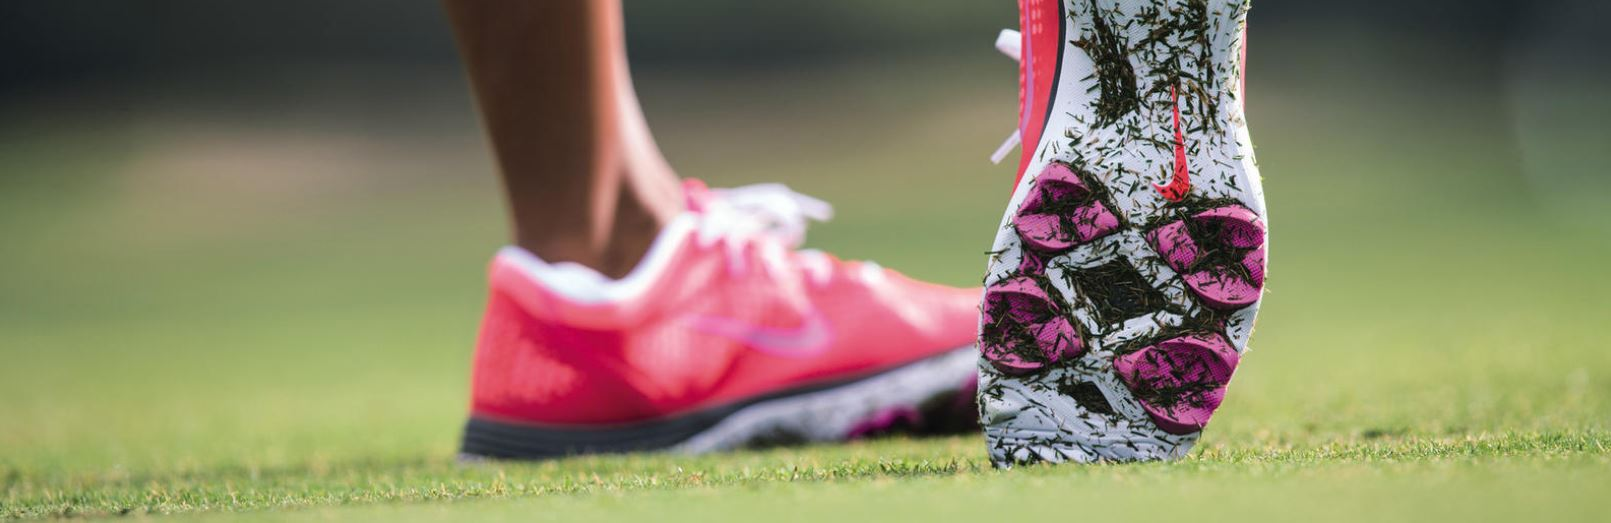 4aa7a99636a2a Ultimate Guide To Golf Shoes For Women - (MUST READ Before You Buy)